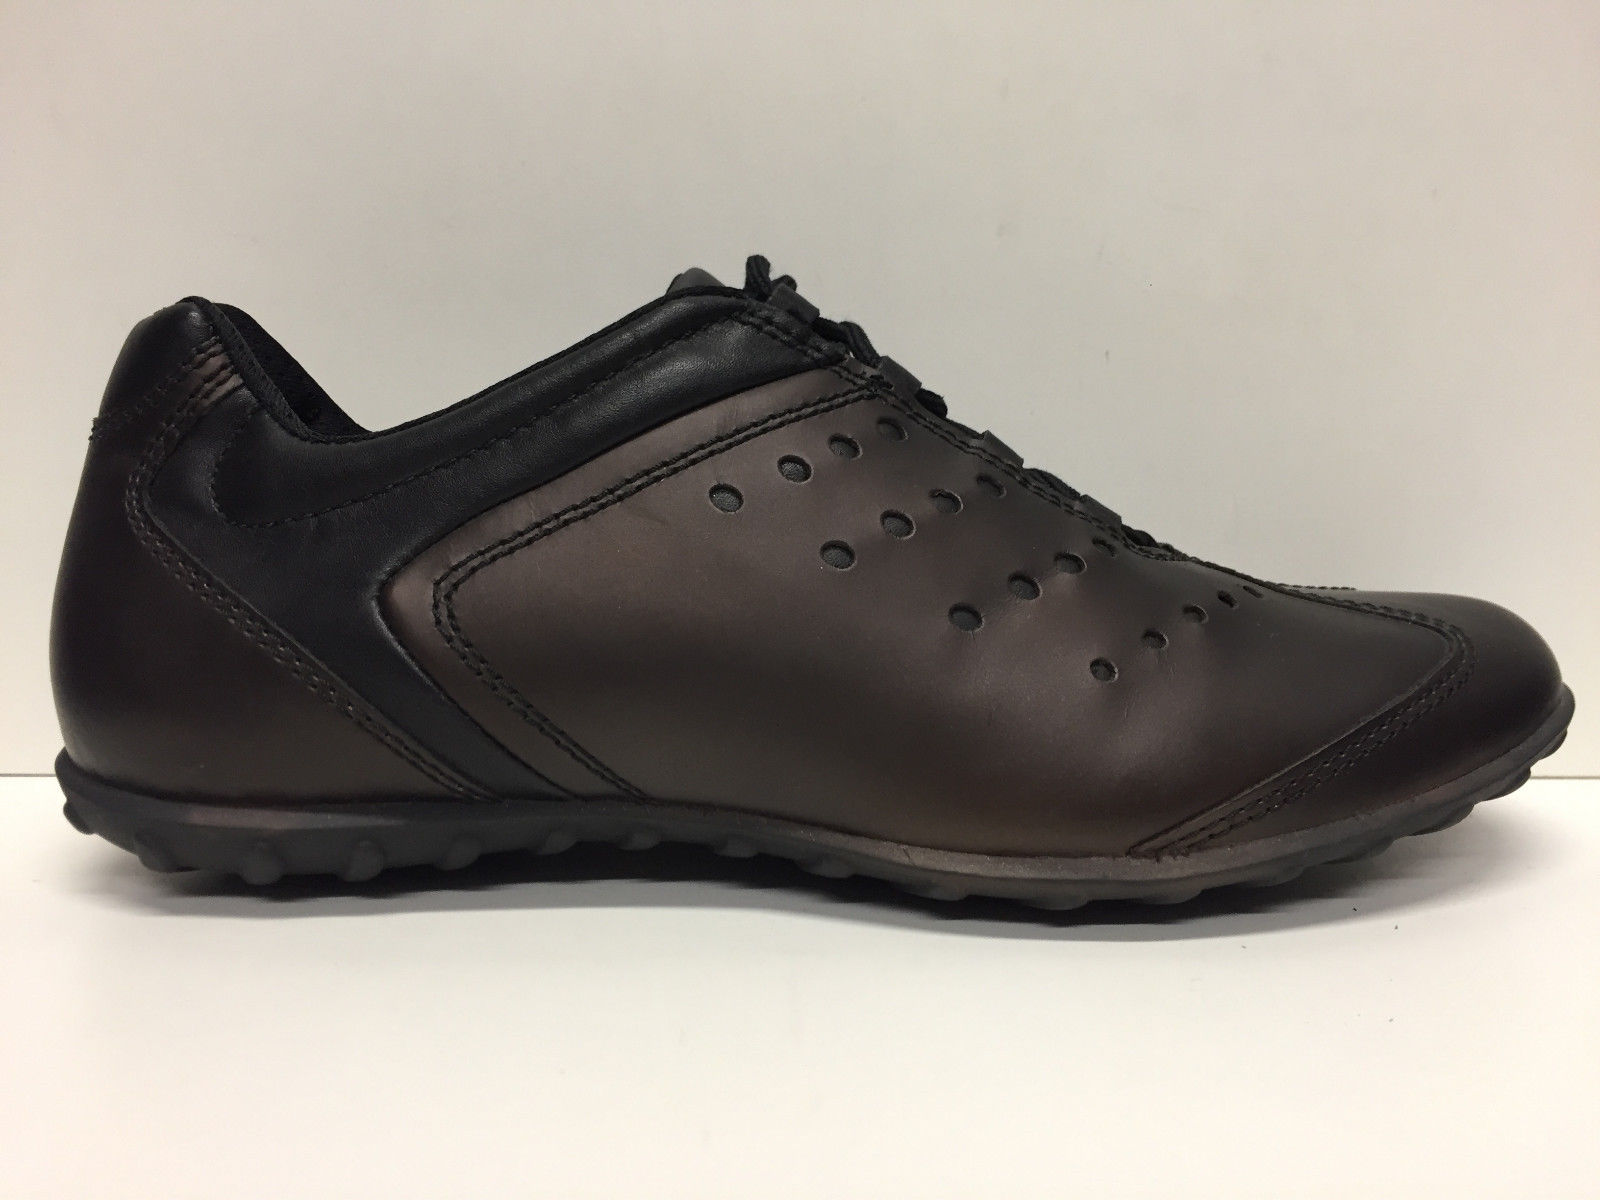 SCARPE CASUAL DONNA GEOX ORIGINAL HIT D5176L BRONZO PELLE SHOES LEATHER A/I NEW